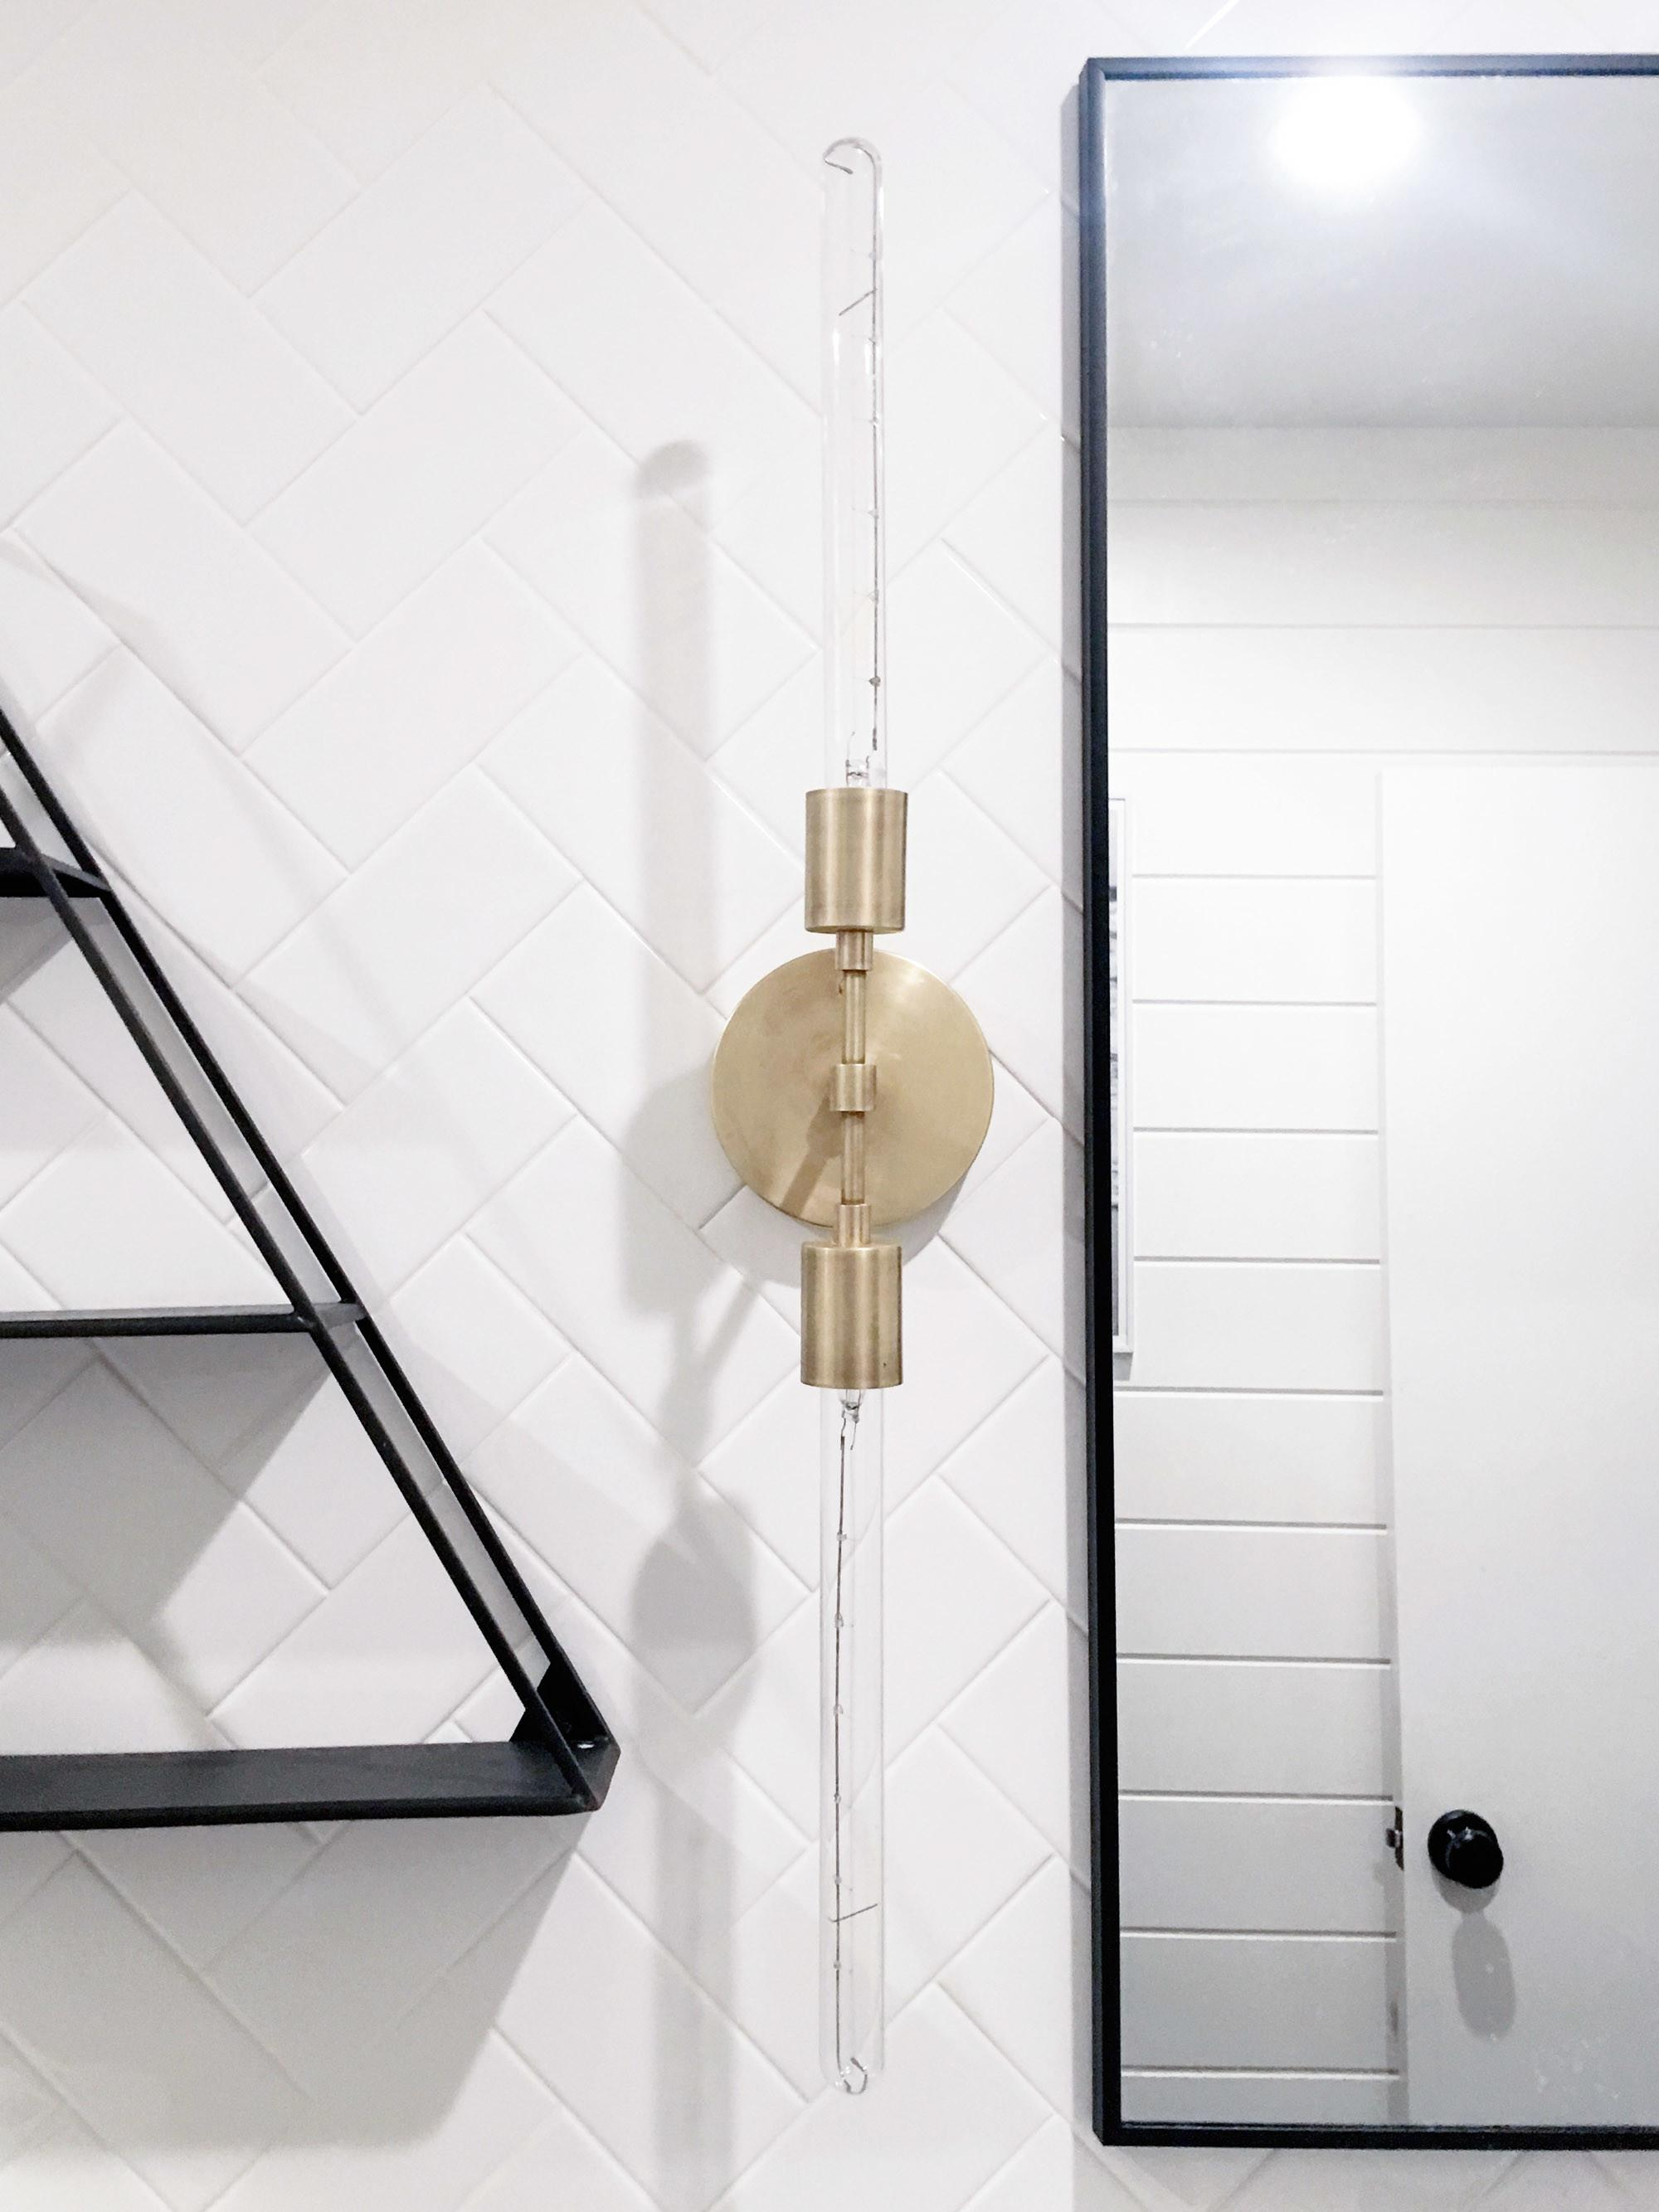 Clean Polished Brass Light Fixtures